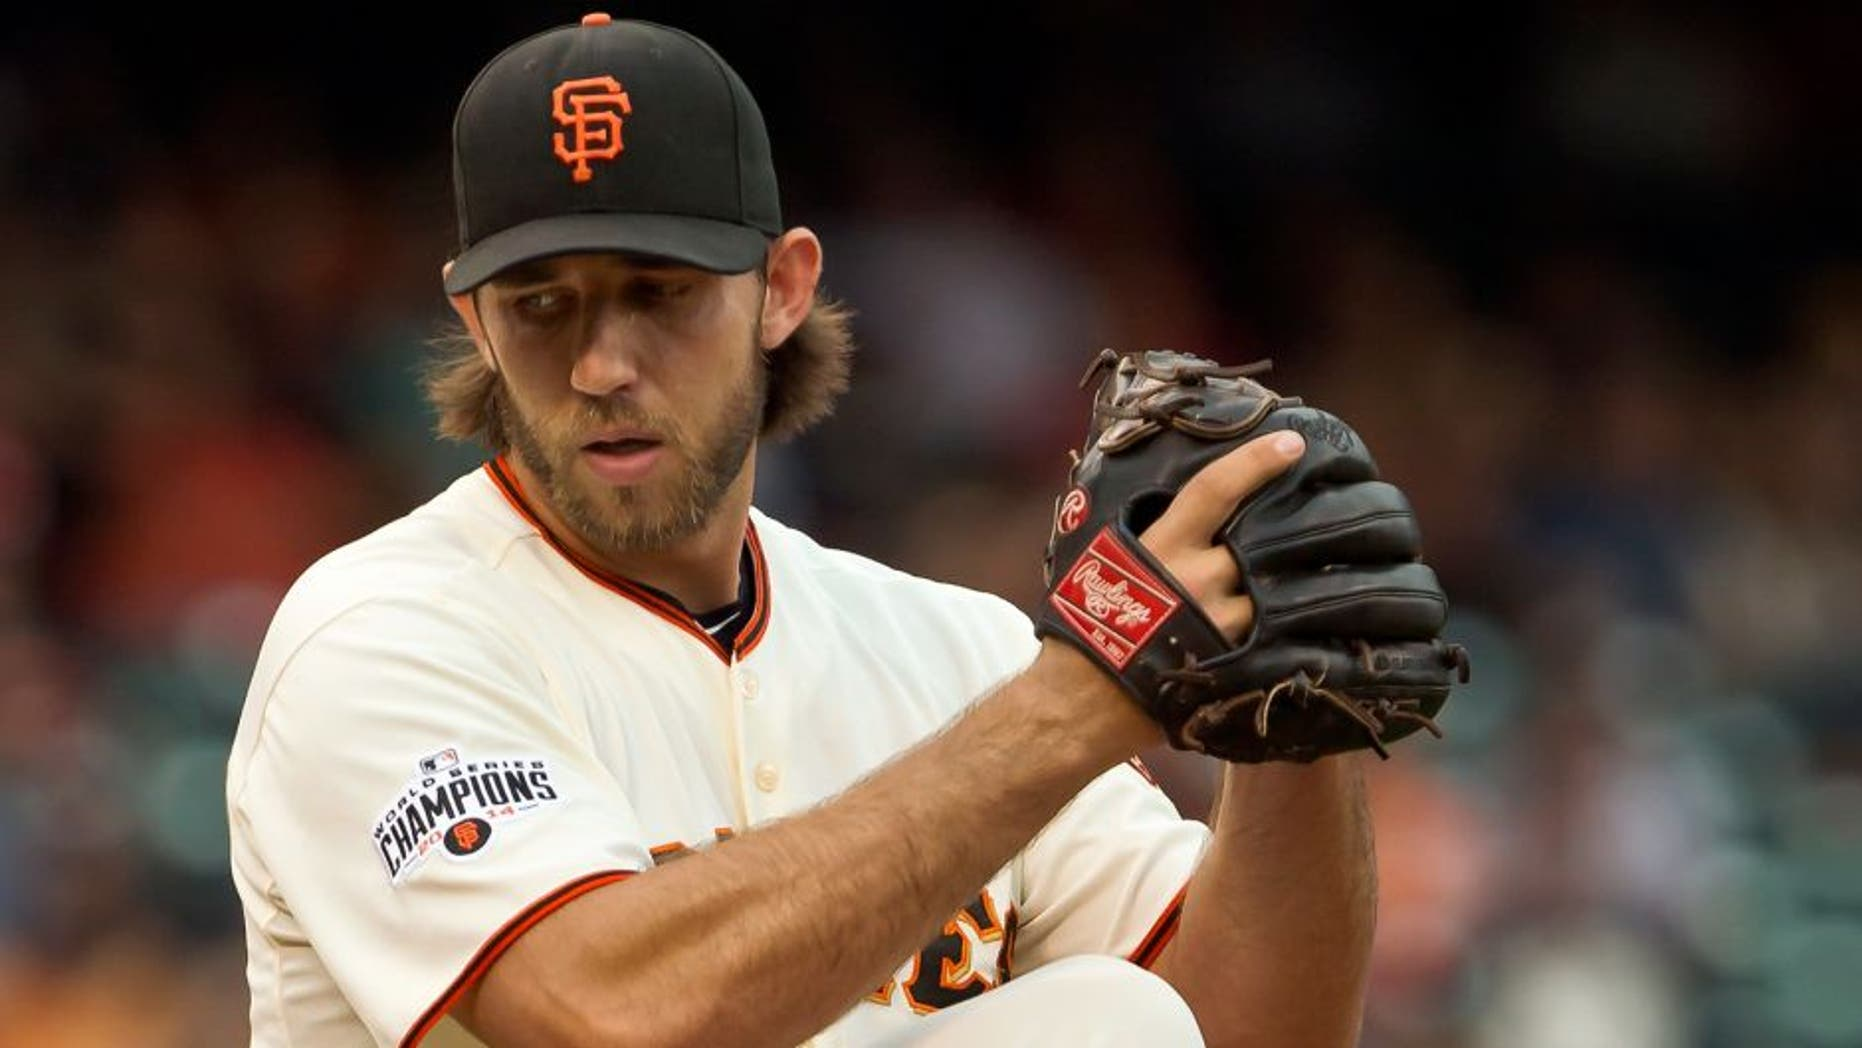 SAN FRANCISCO, CA - SEPTEMBER 12: Starting pitcher Madison Bumgarner #40 of the San Francisco Giants winds up for a pitch against the San Dieigo Padres at AT&T Park in the first inning on September 12, 2015 in San Francisco, California. (Photo by Brian Bahr/Getty Images)